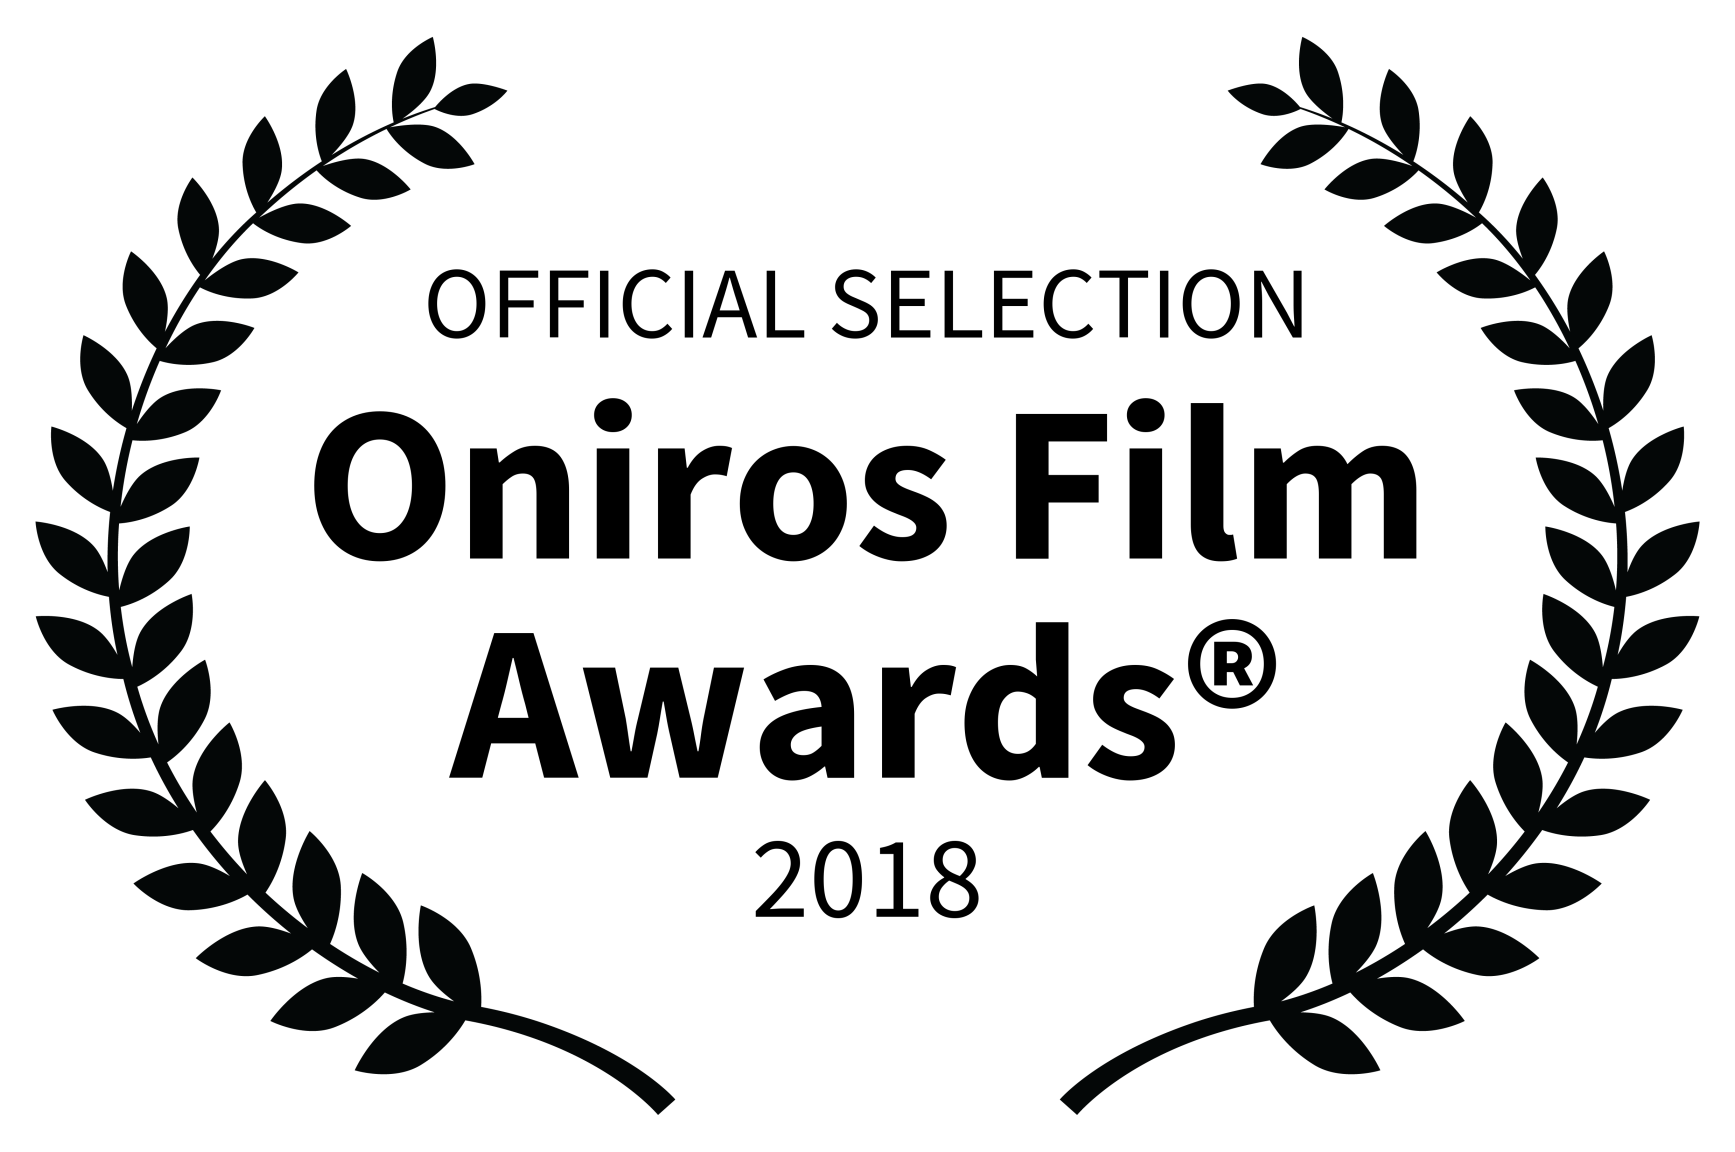 OFFICIAL SELECTION - Oniros Film Awards - 2018